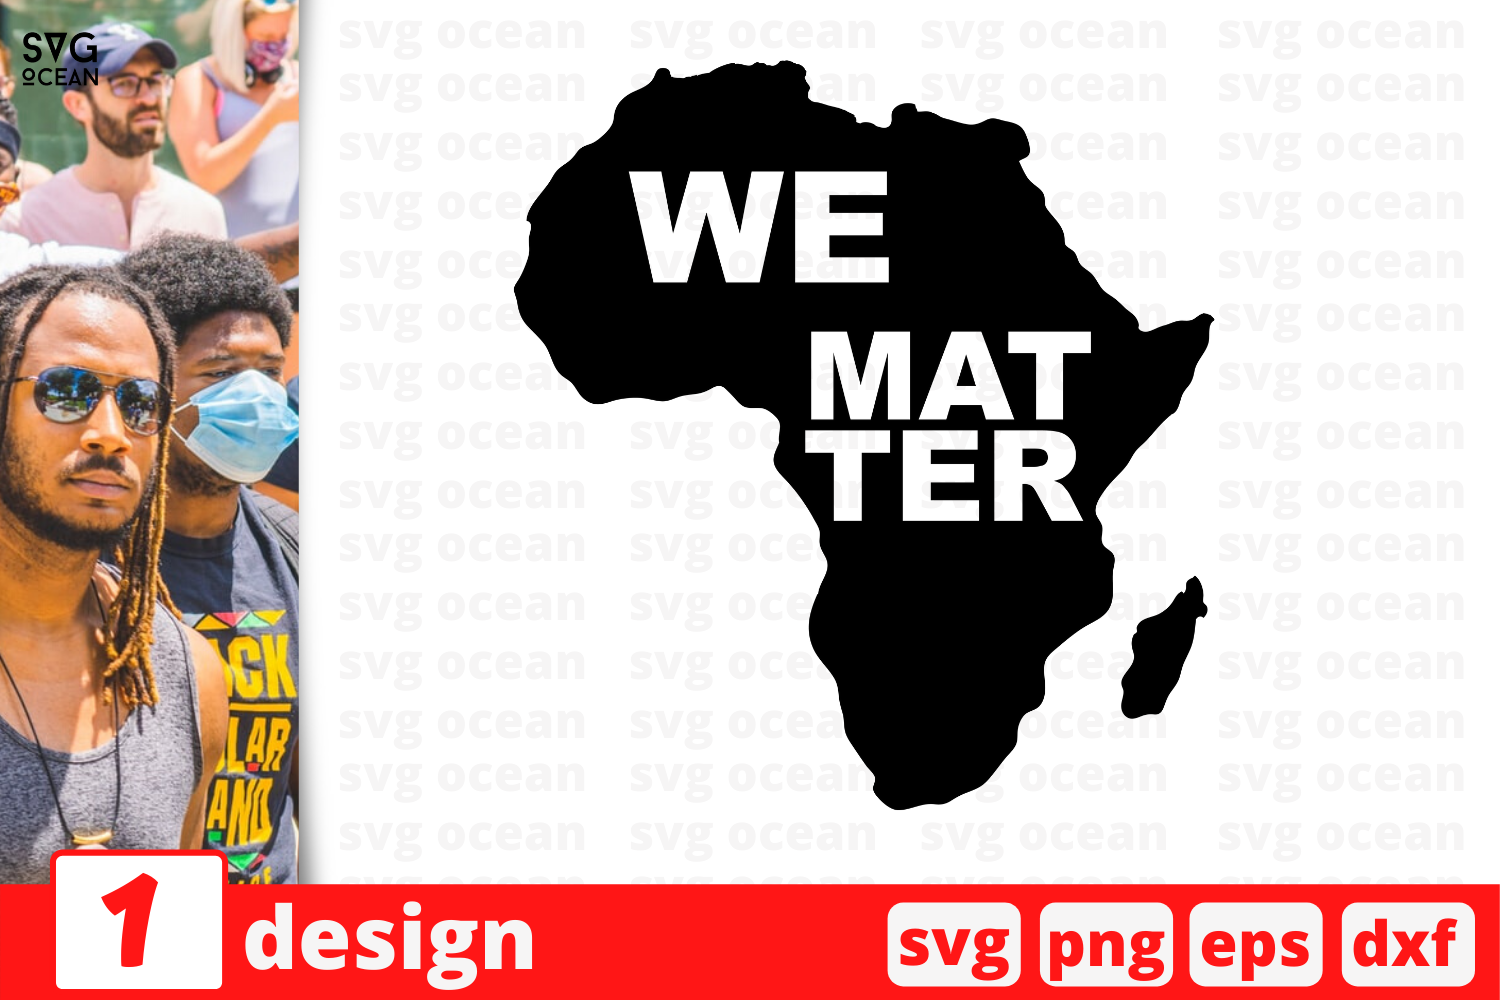 Download Free We Matter Graphic By Svgocean Creative Fabrica for Cricut Explore, Silhouette and other cutting machines.